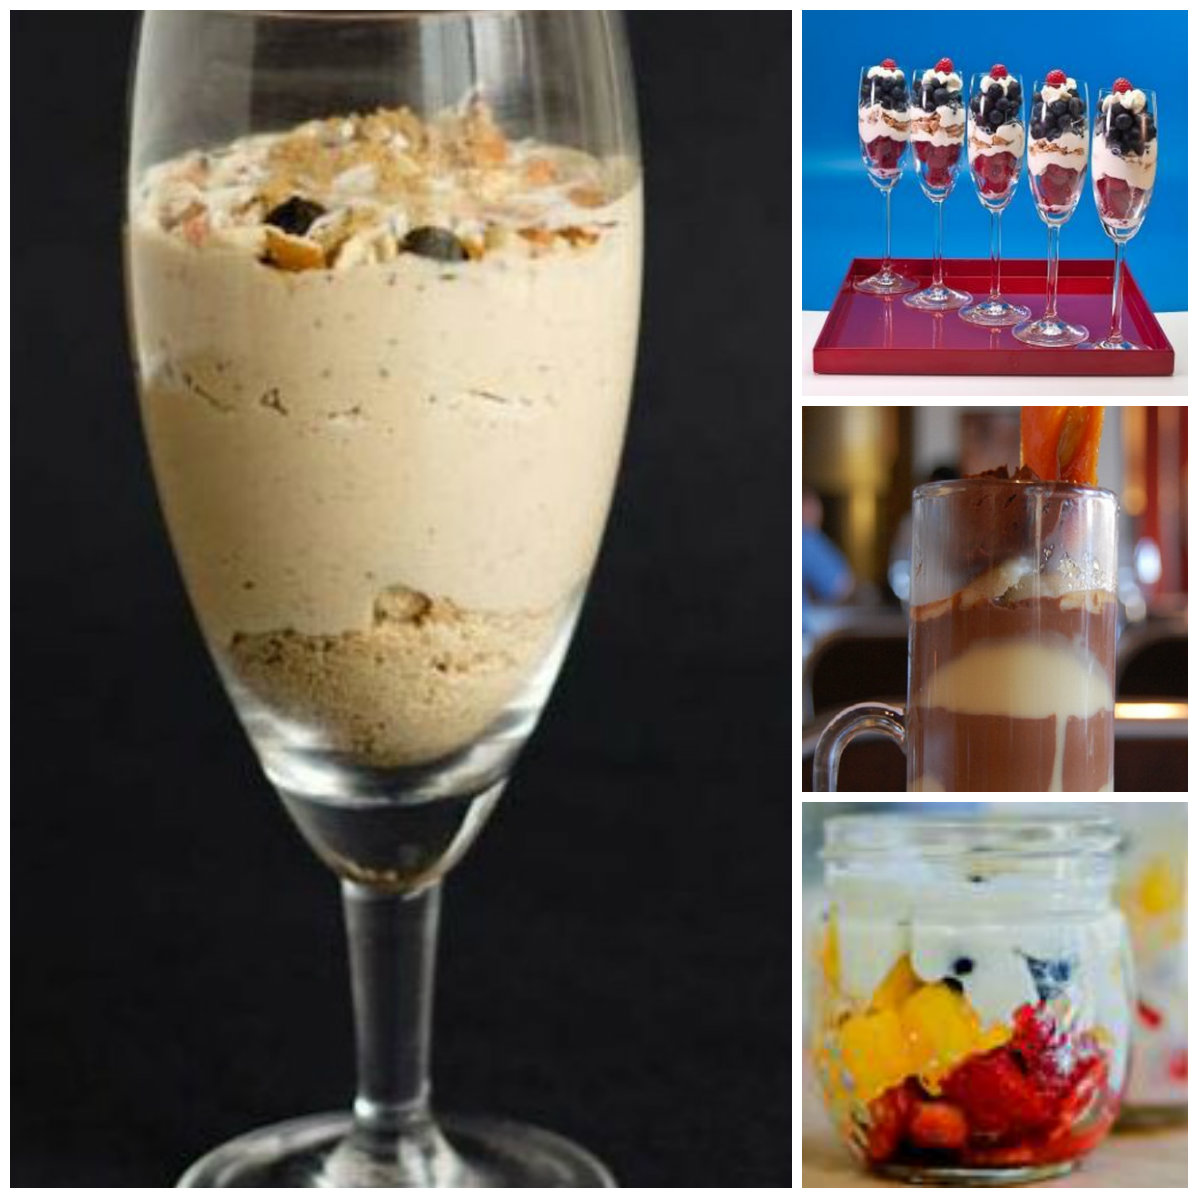 Top 7 Recipes To Celebrate National Parfait Day